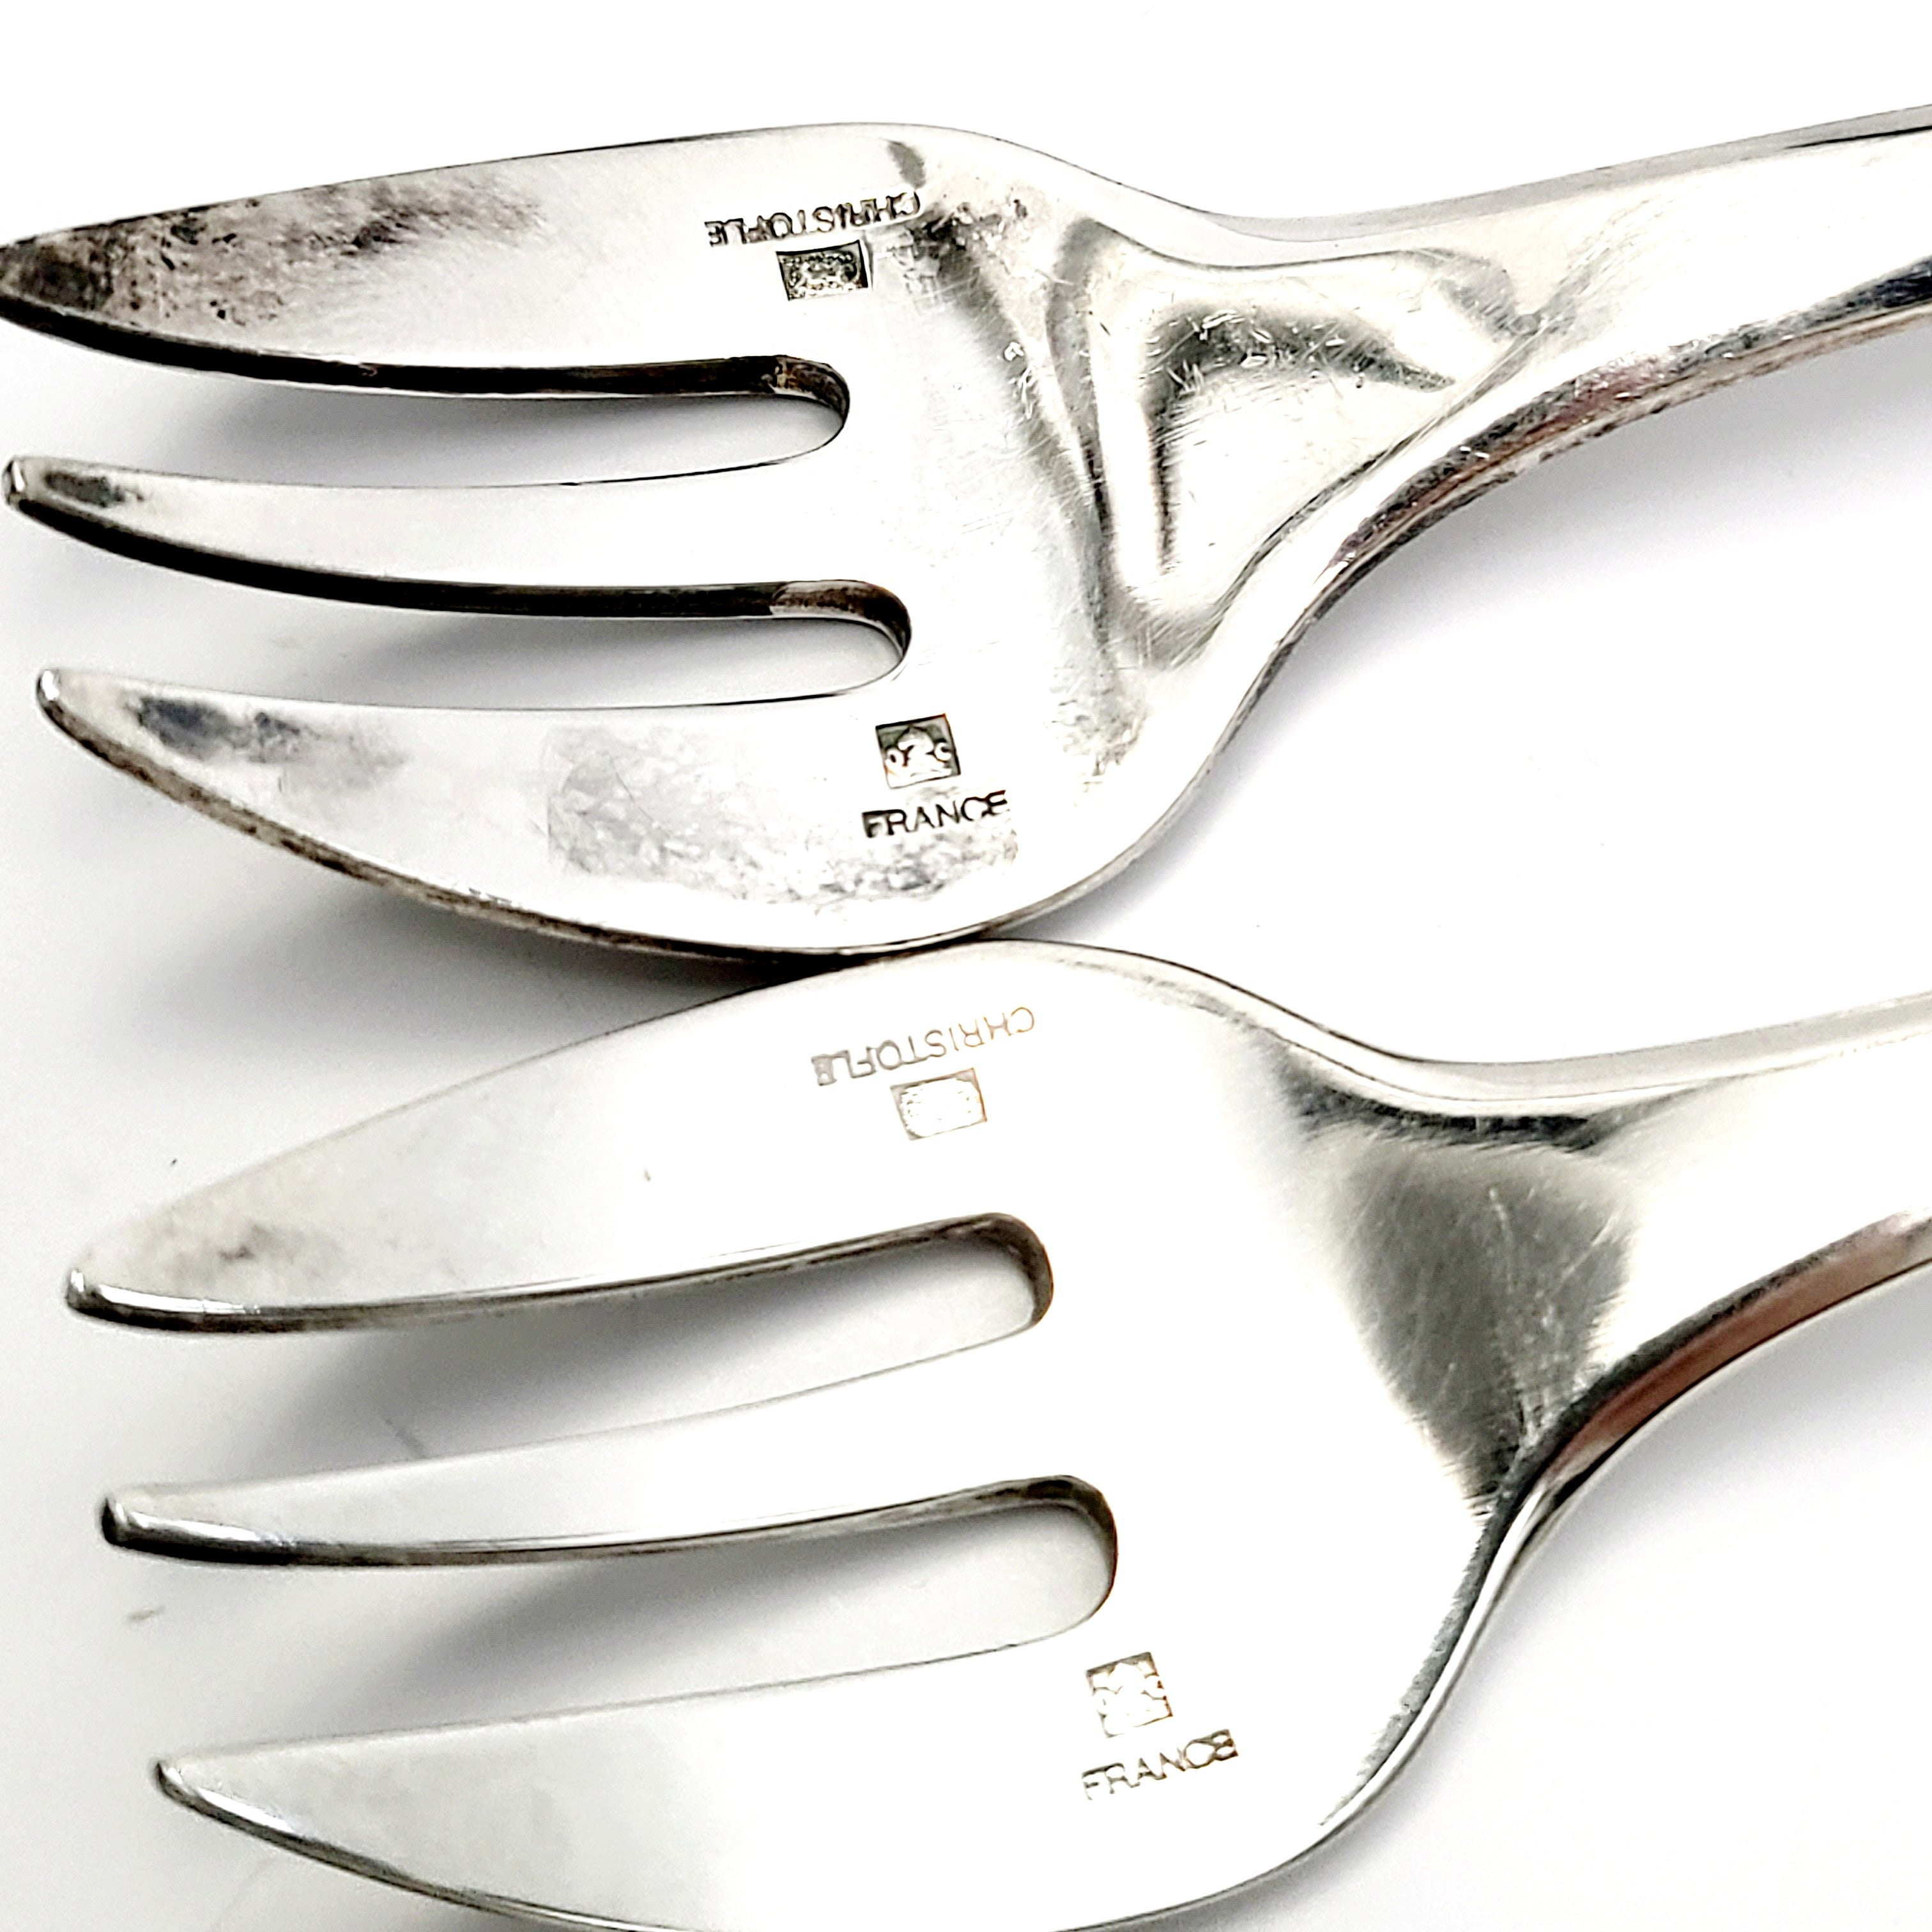 Cluny by Christofle Silverplate Pickle Fork 2-Tine 6 18 Serving